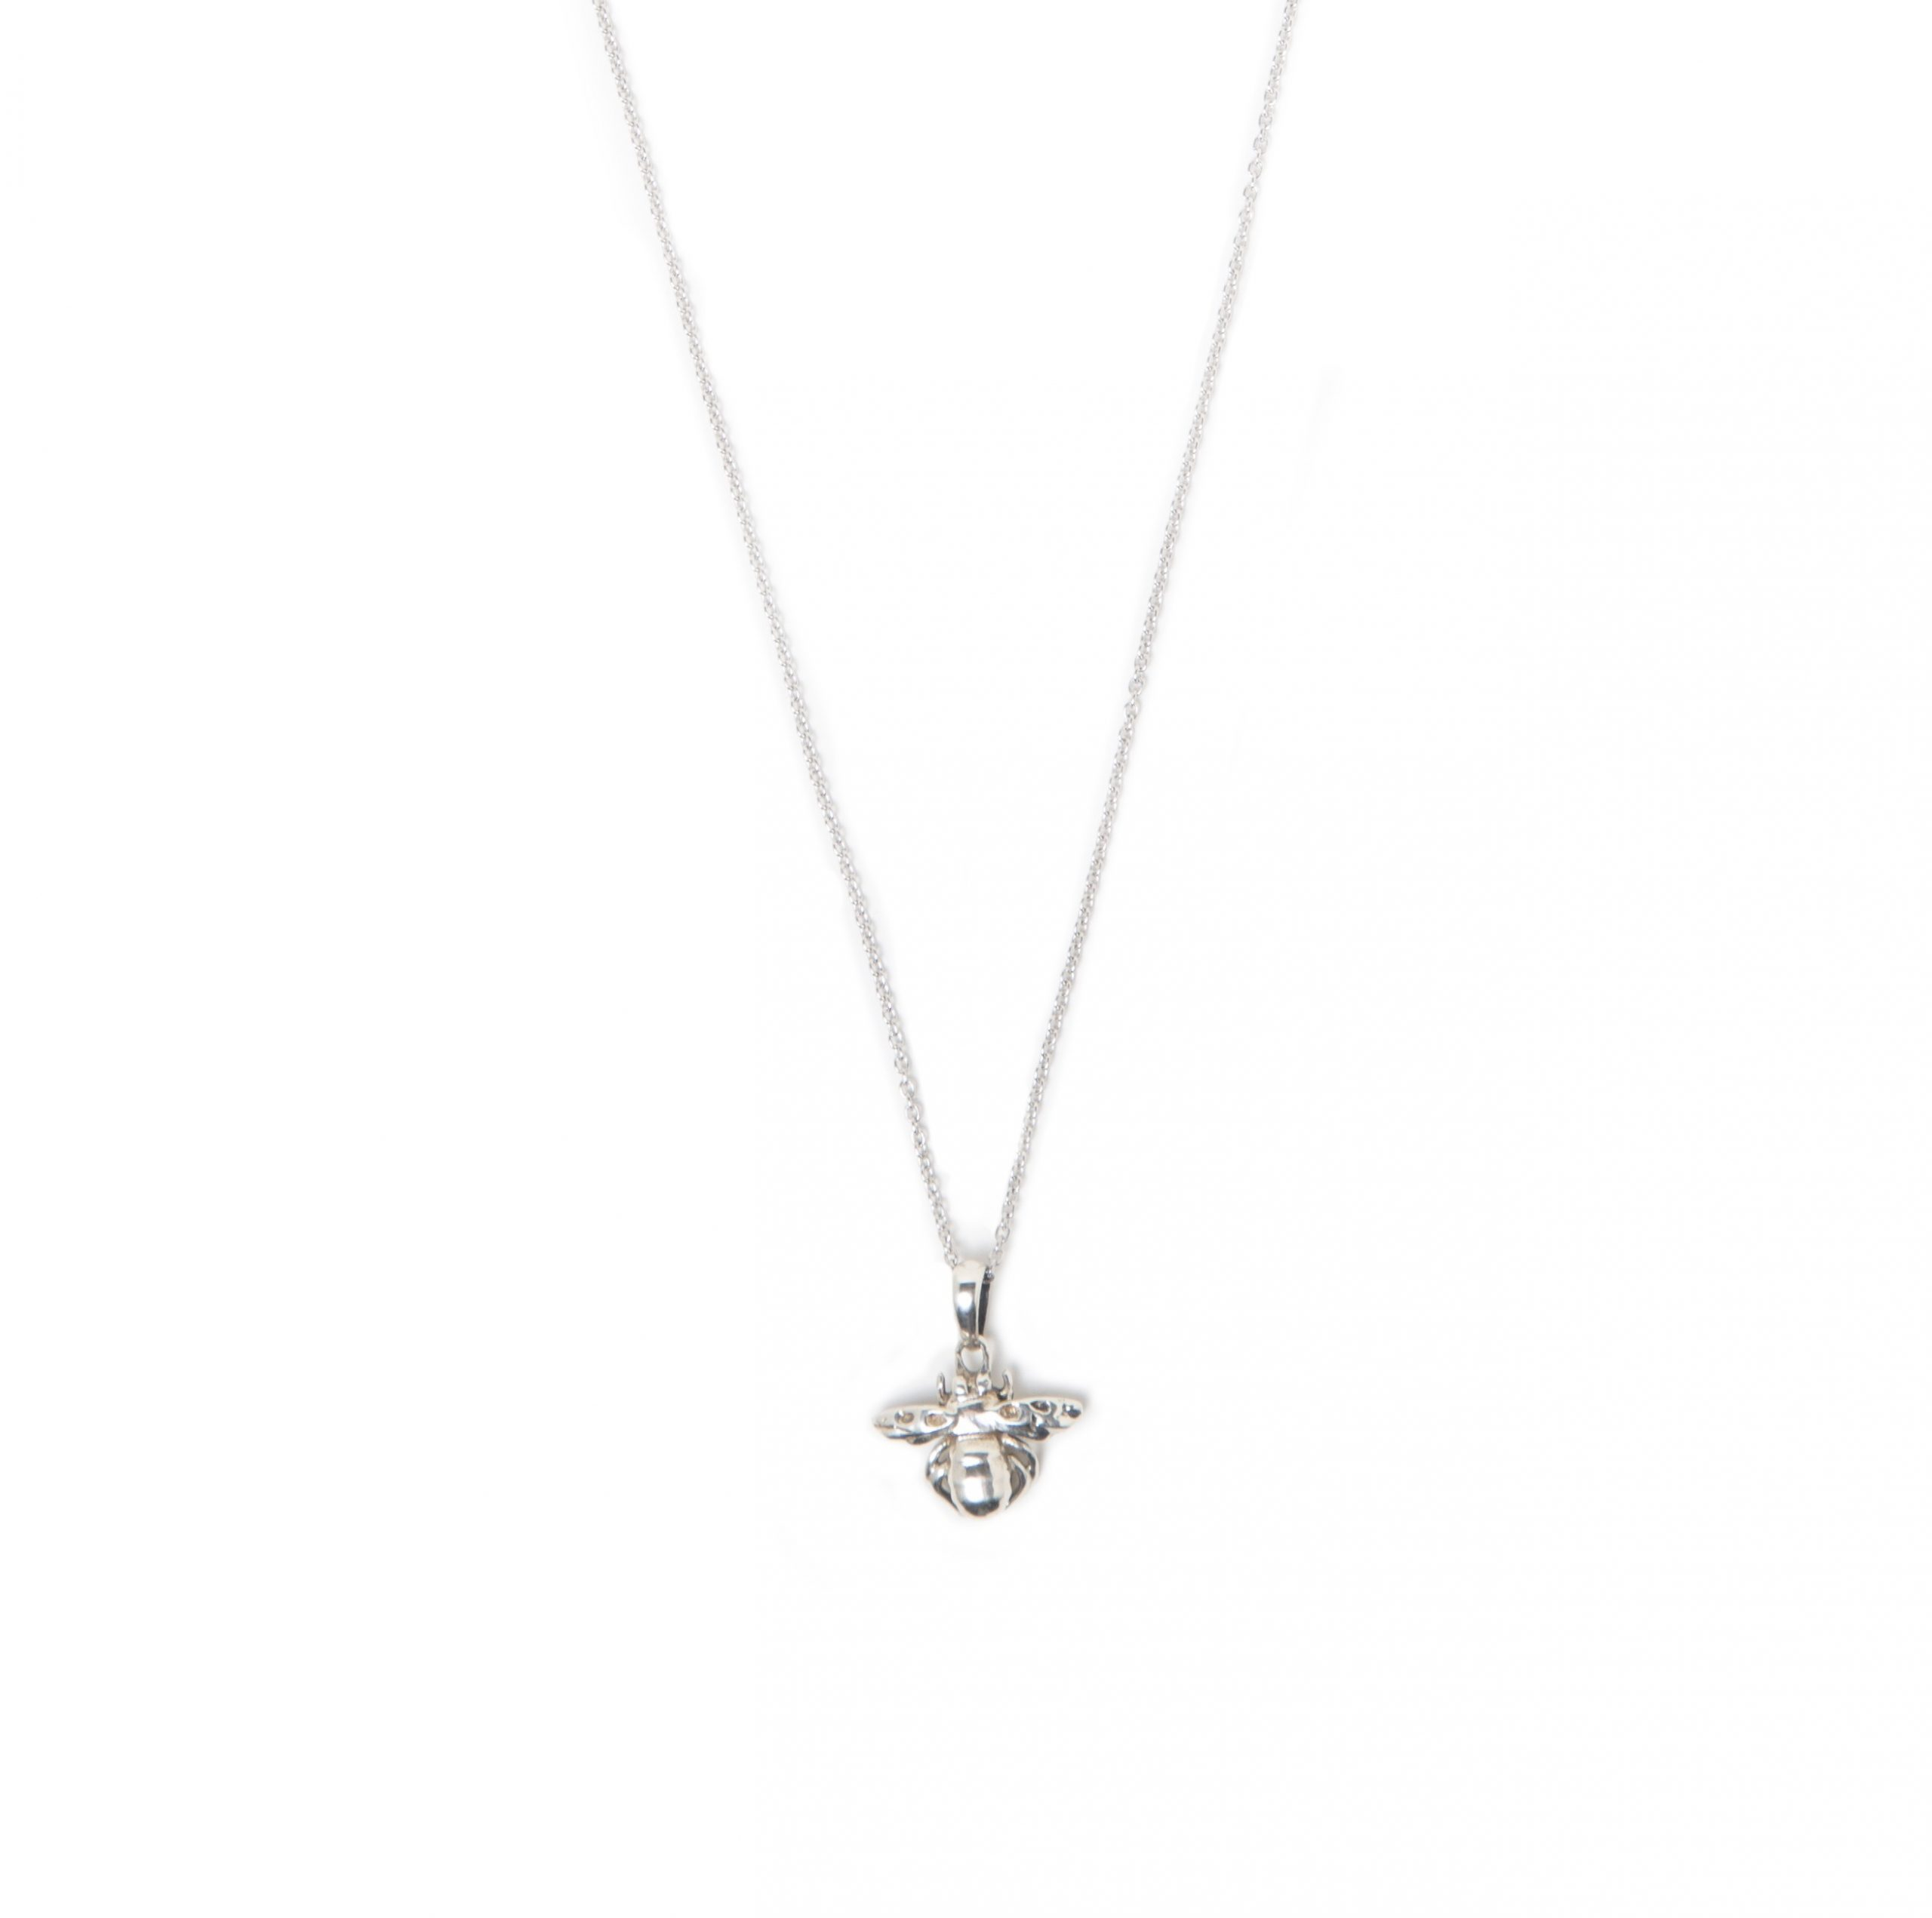 Osiris I pendant it is sterling silver. Jewelry made in Quebec. Available at Birks - downtown Montréal